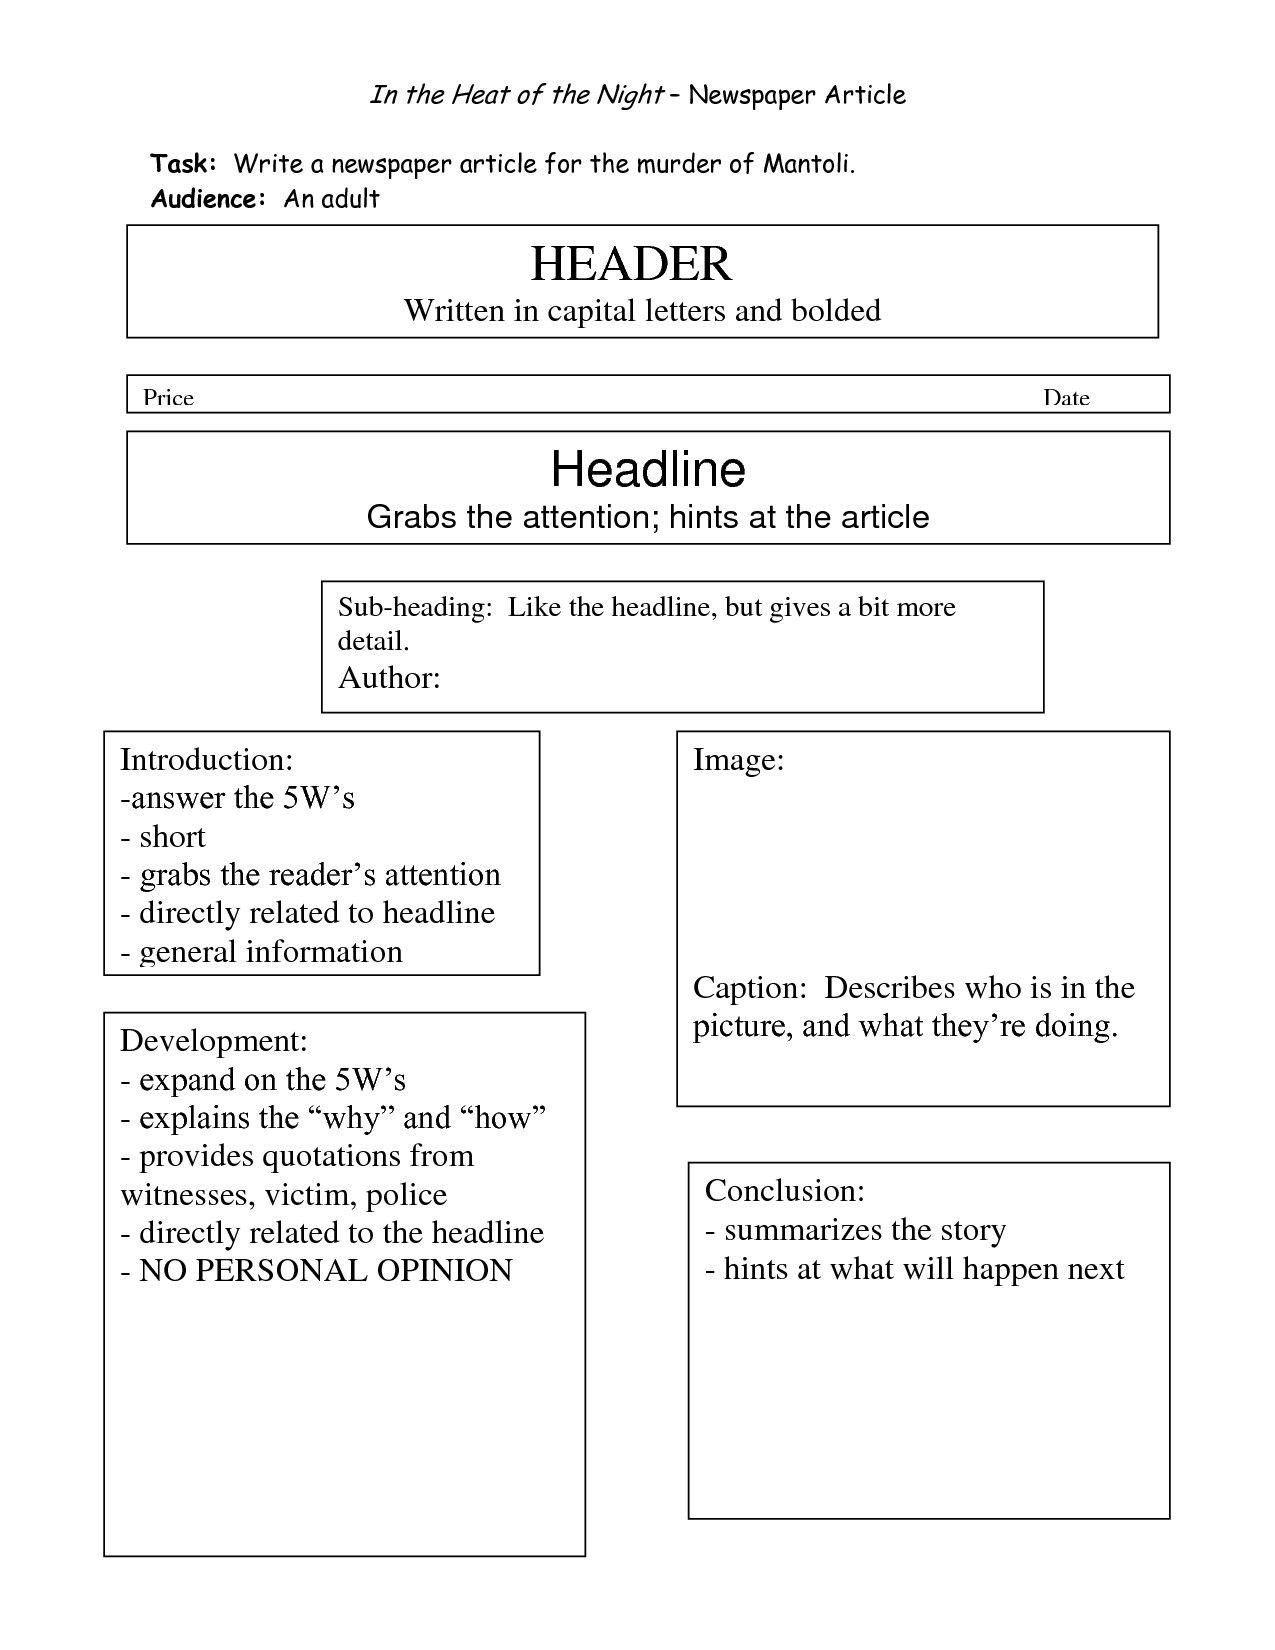 How To Write An Article For A Newspaper - arxiusarquitectura